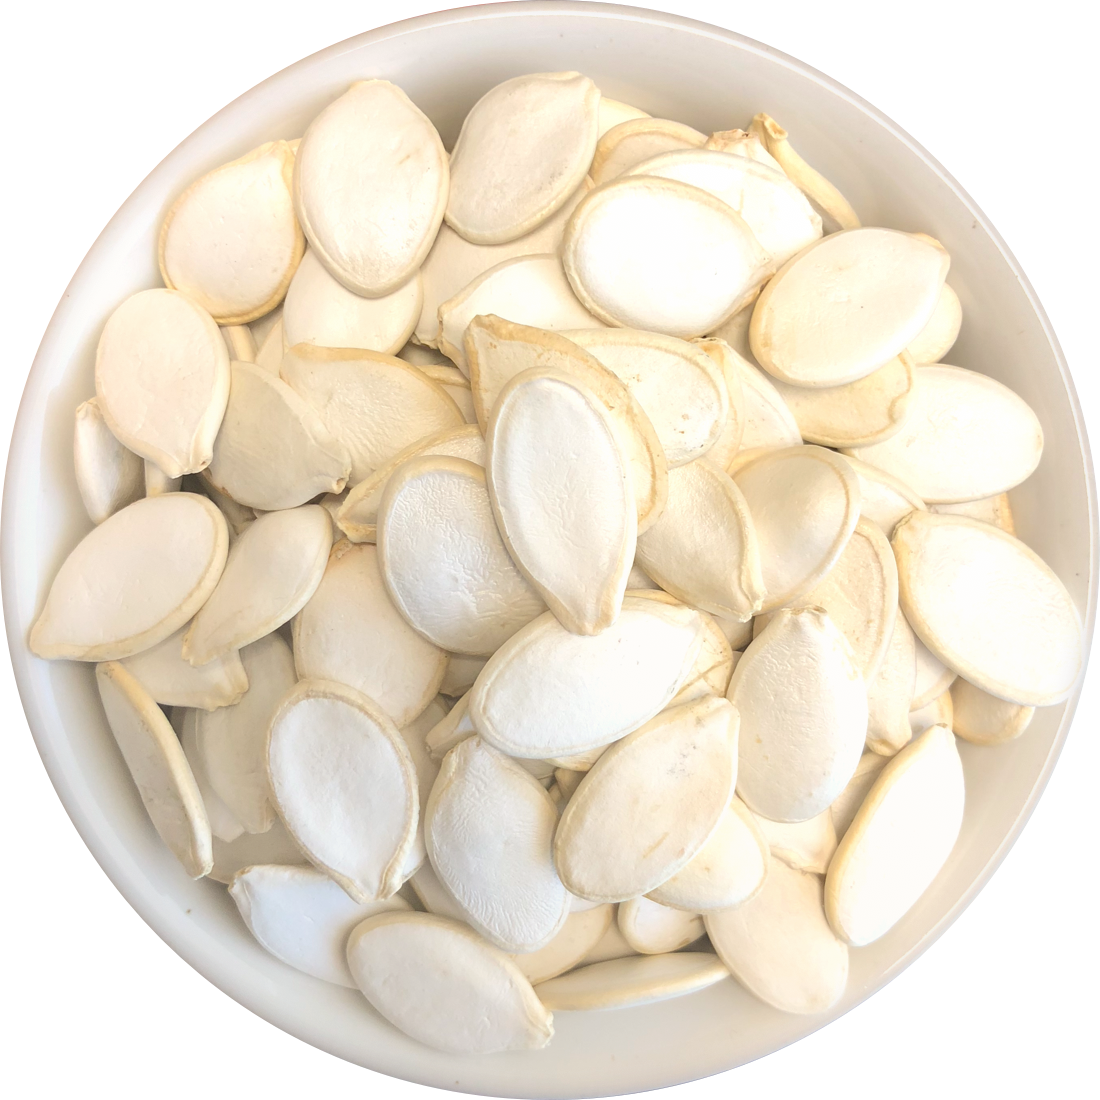 Pumpkin Seeds - Chubby - Raw